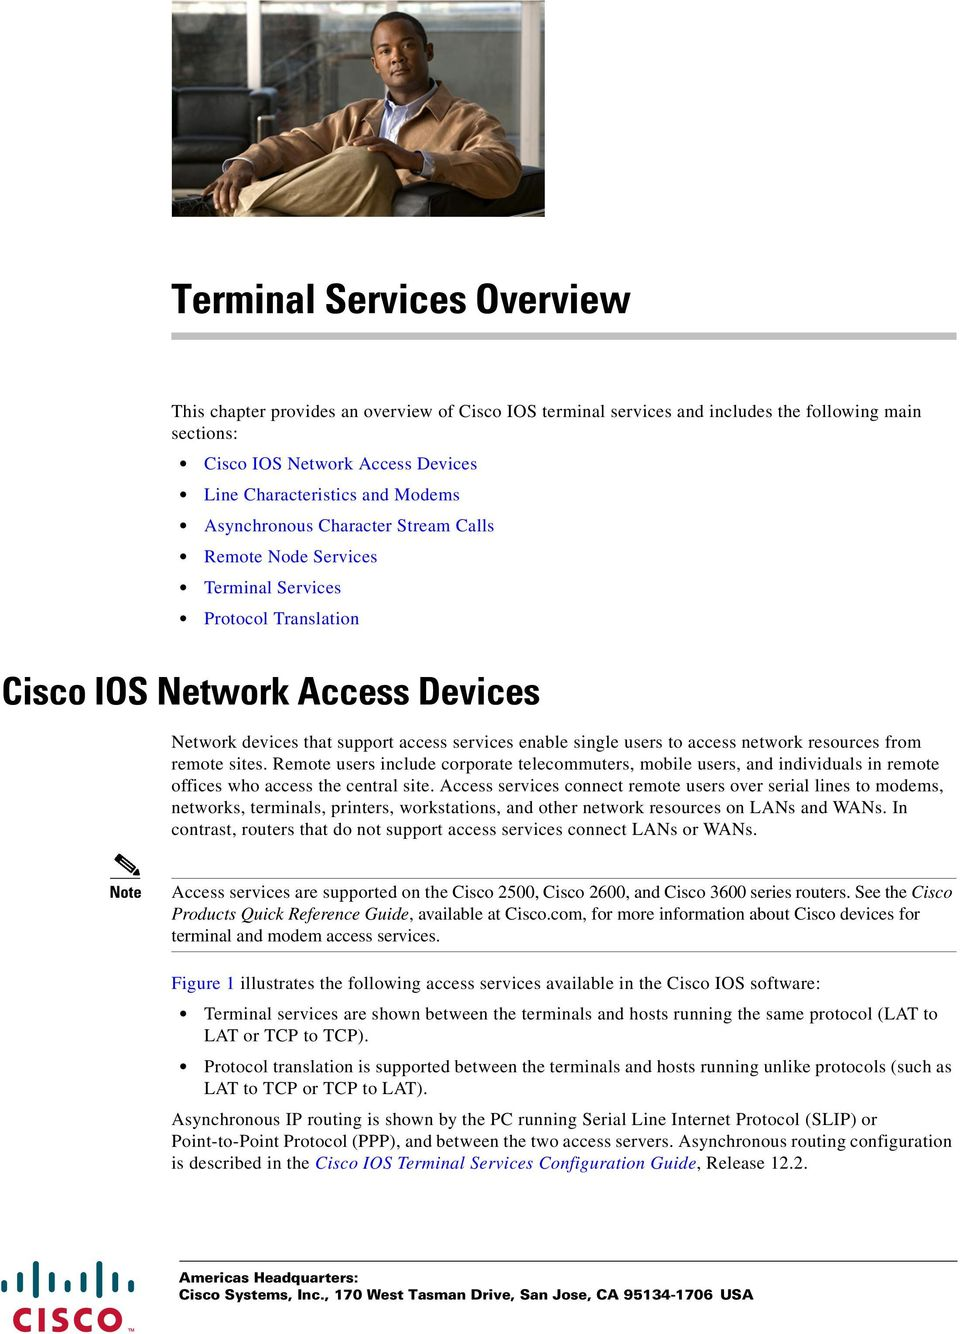 access network resources from remote sites. Remote users include corporate telecommuters, mobile users, and individuals in remote offices who access the central site.